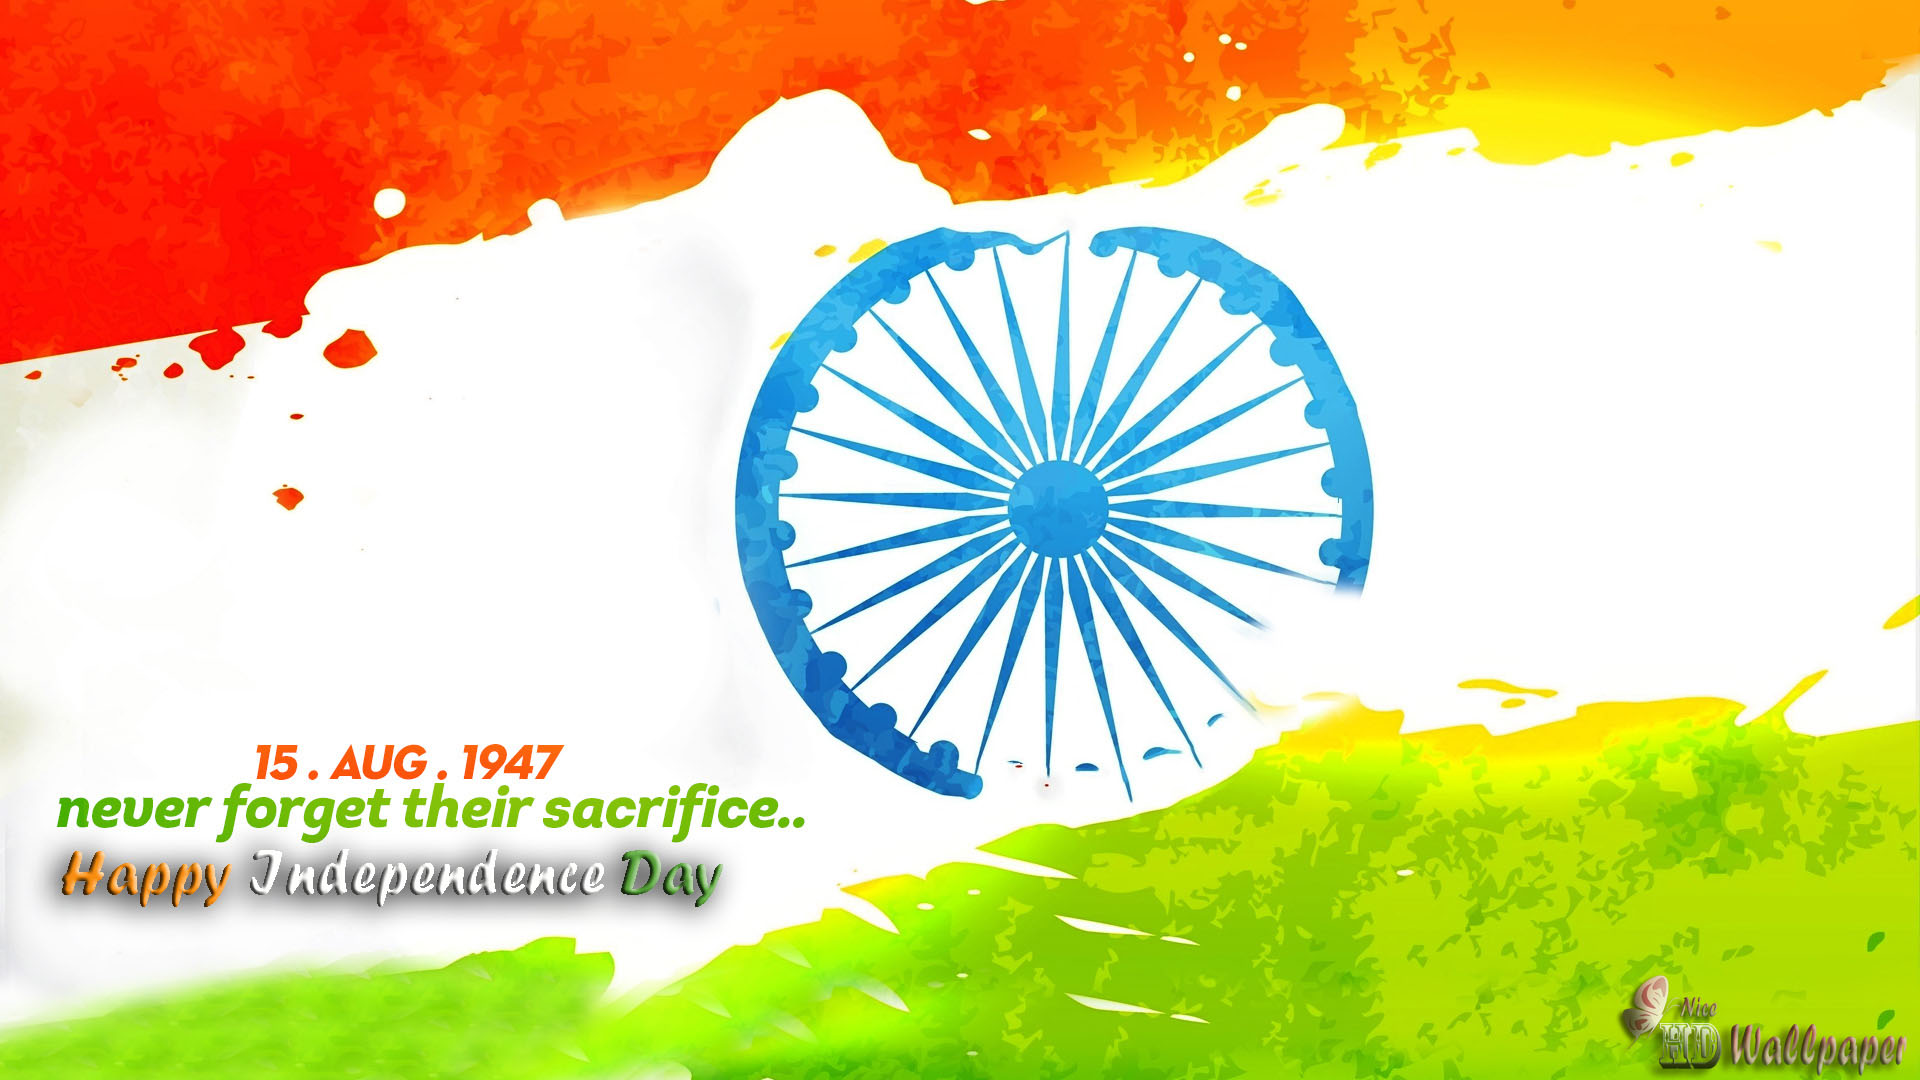 Happy Independence Day 2016 Wishes, Quotes, SMS, Messages